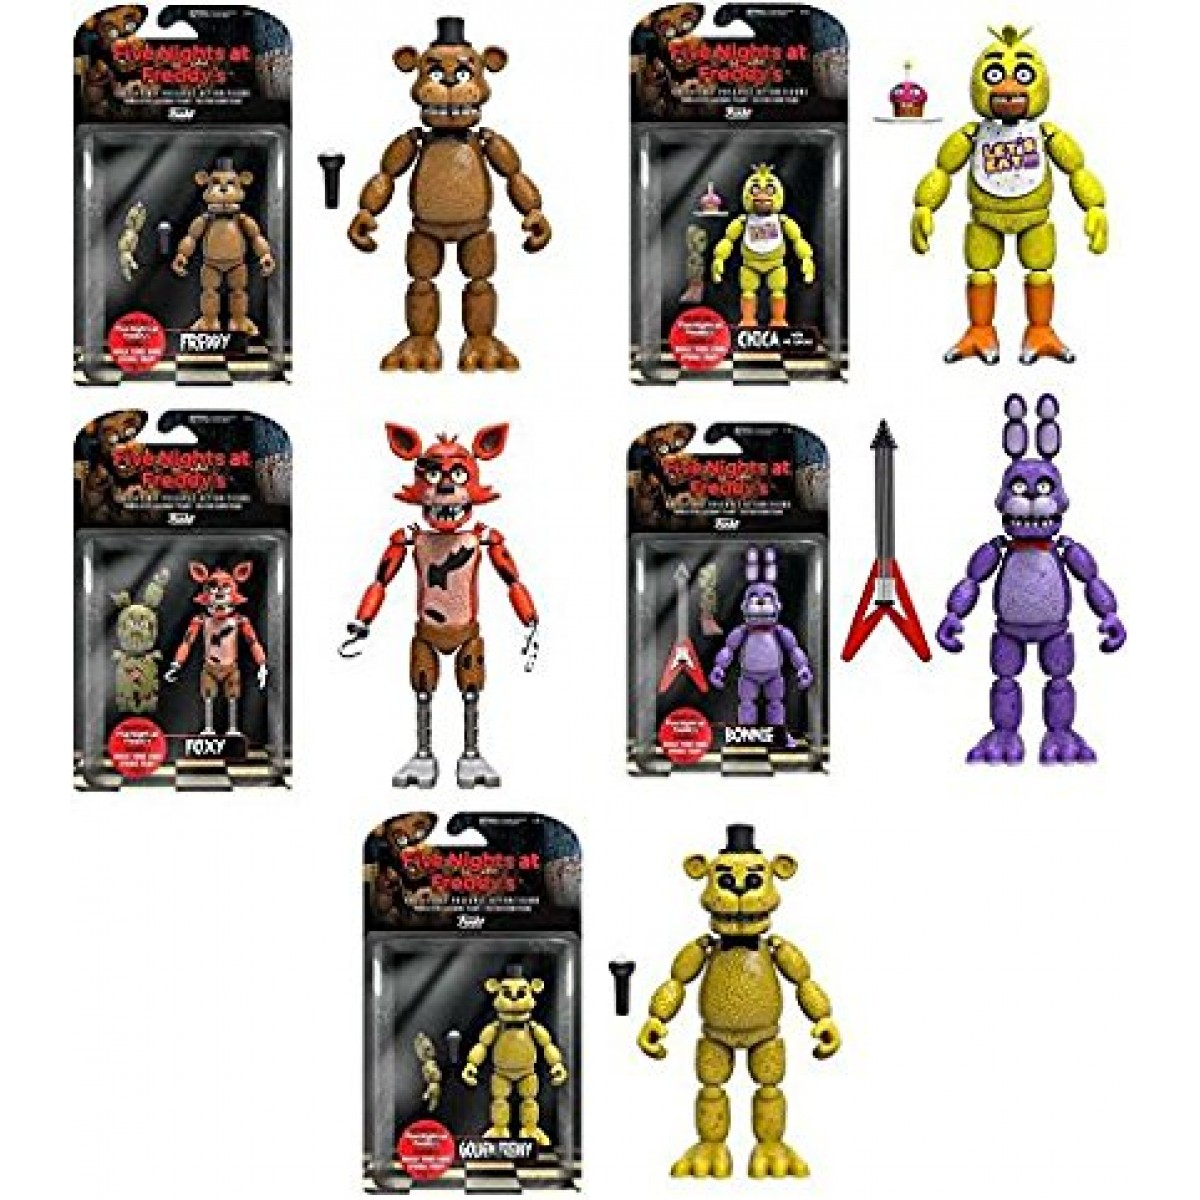 """5 Nights At Freddy's Chica funko five nights at freddy's 5"""" freddy, chica, foxy, bonnie, gold freddy  action figures! set of 5"""